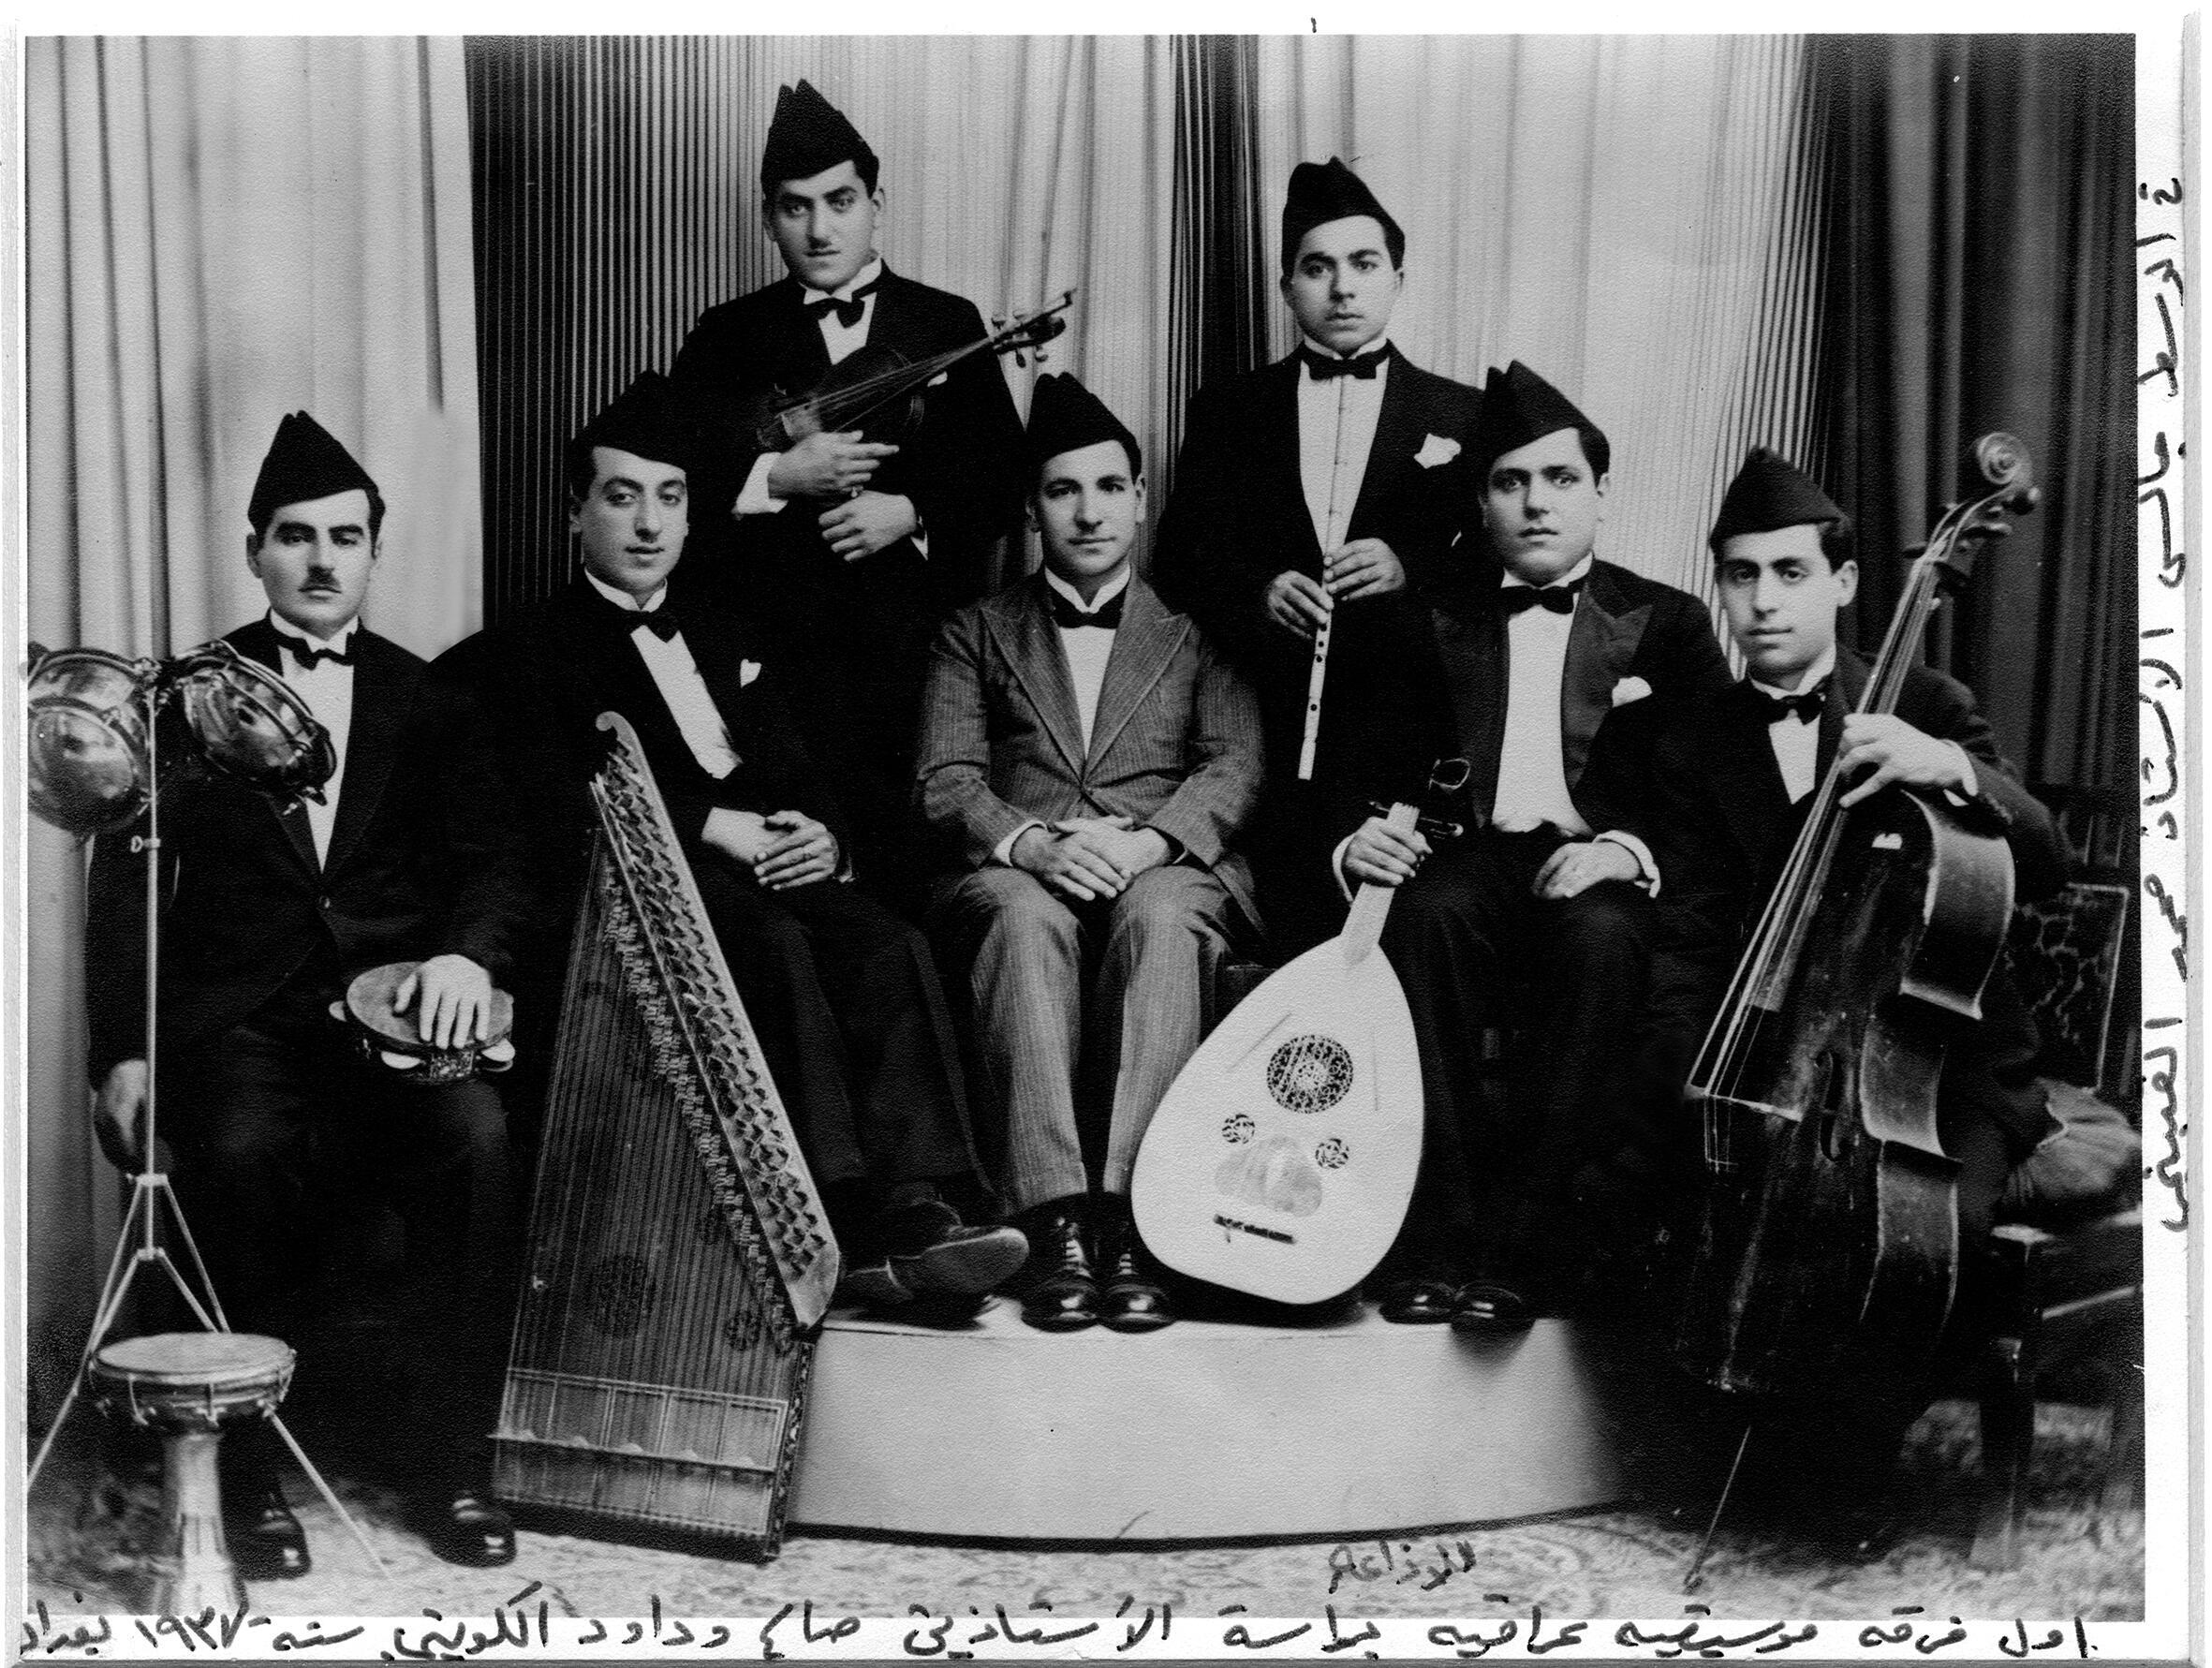 The al Kuwaitis brother's band